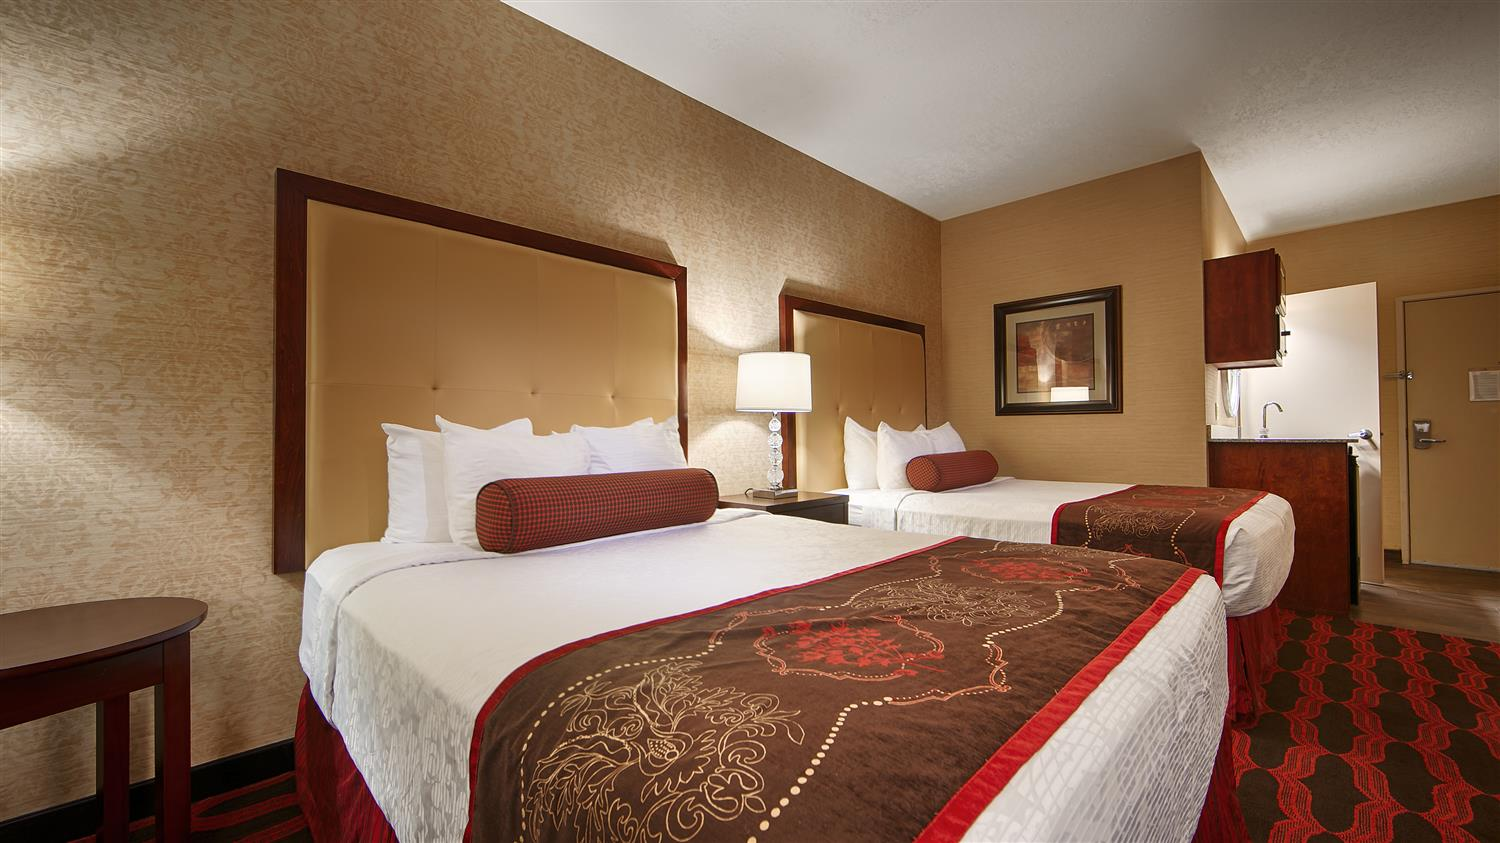 The Best Western Plus Abbey Inn Is One Of Foremost Hotels Located In St George Utah Gateway To Zion National Park And North Rim Grand